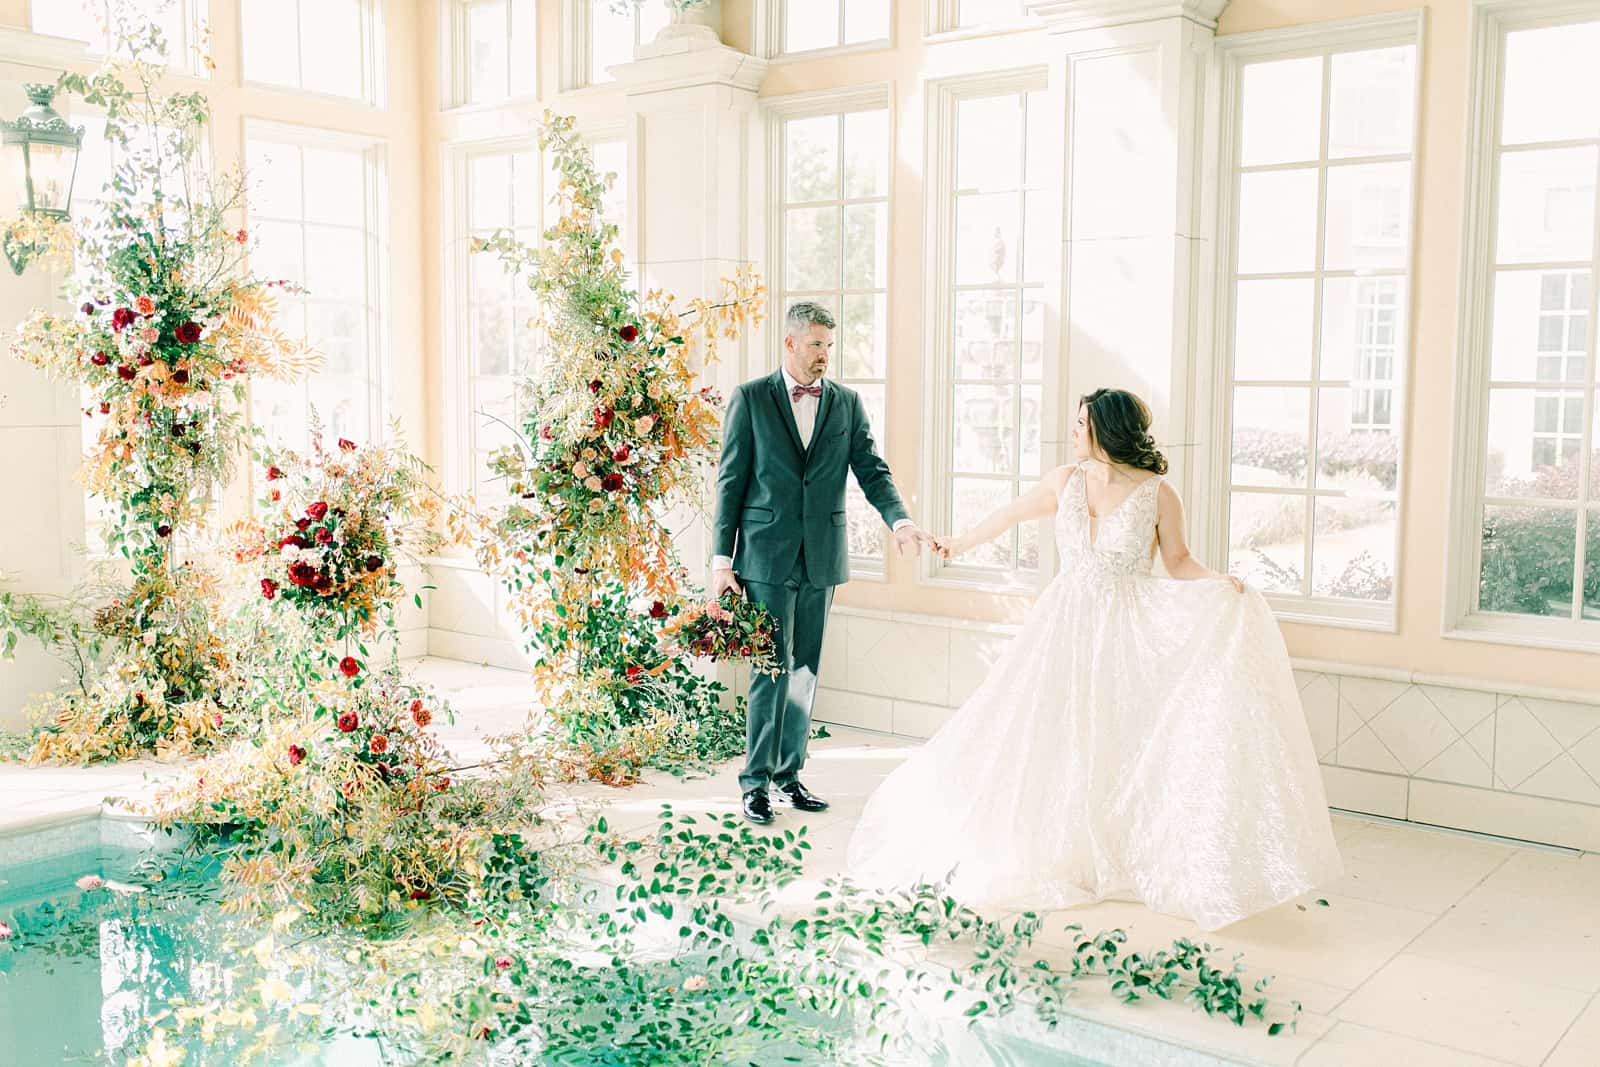 French-inspired wedding at the Olana mansion in Dallas, Texas, pool house ceremony, bride and groom dance with ceremony backdrop